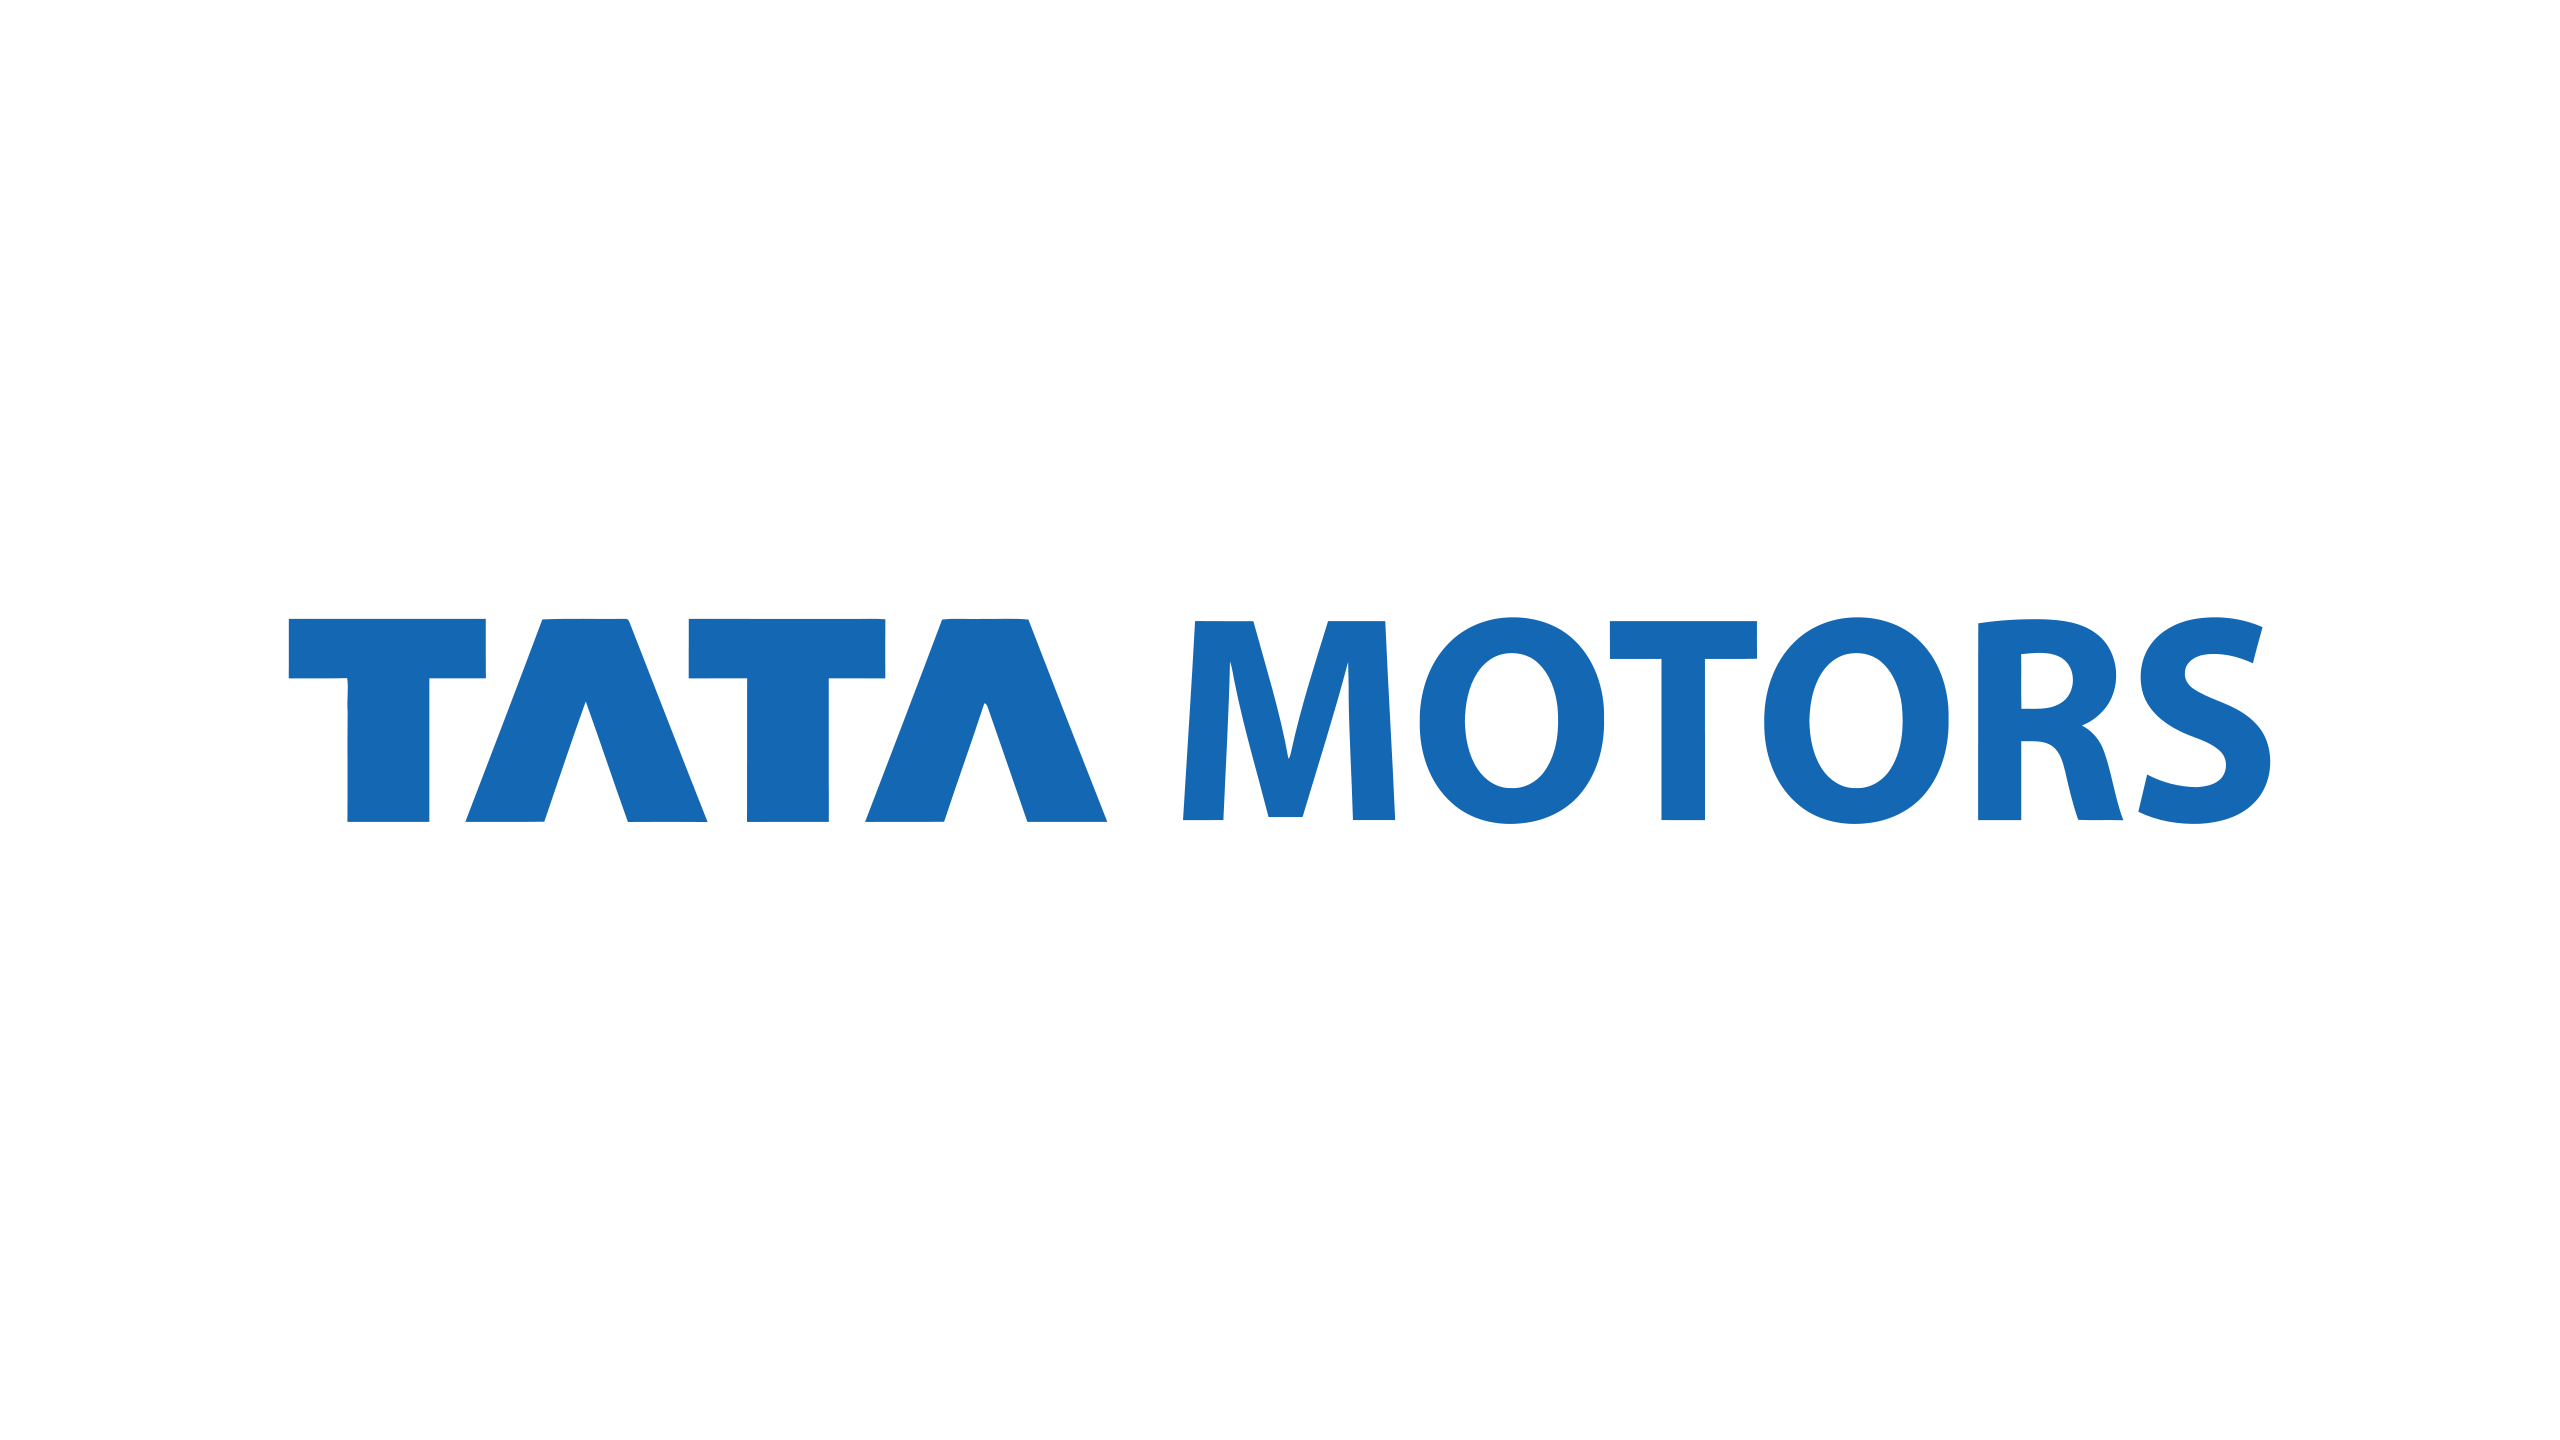 Tata Motors Logo photo - 1